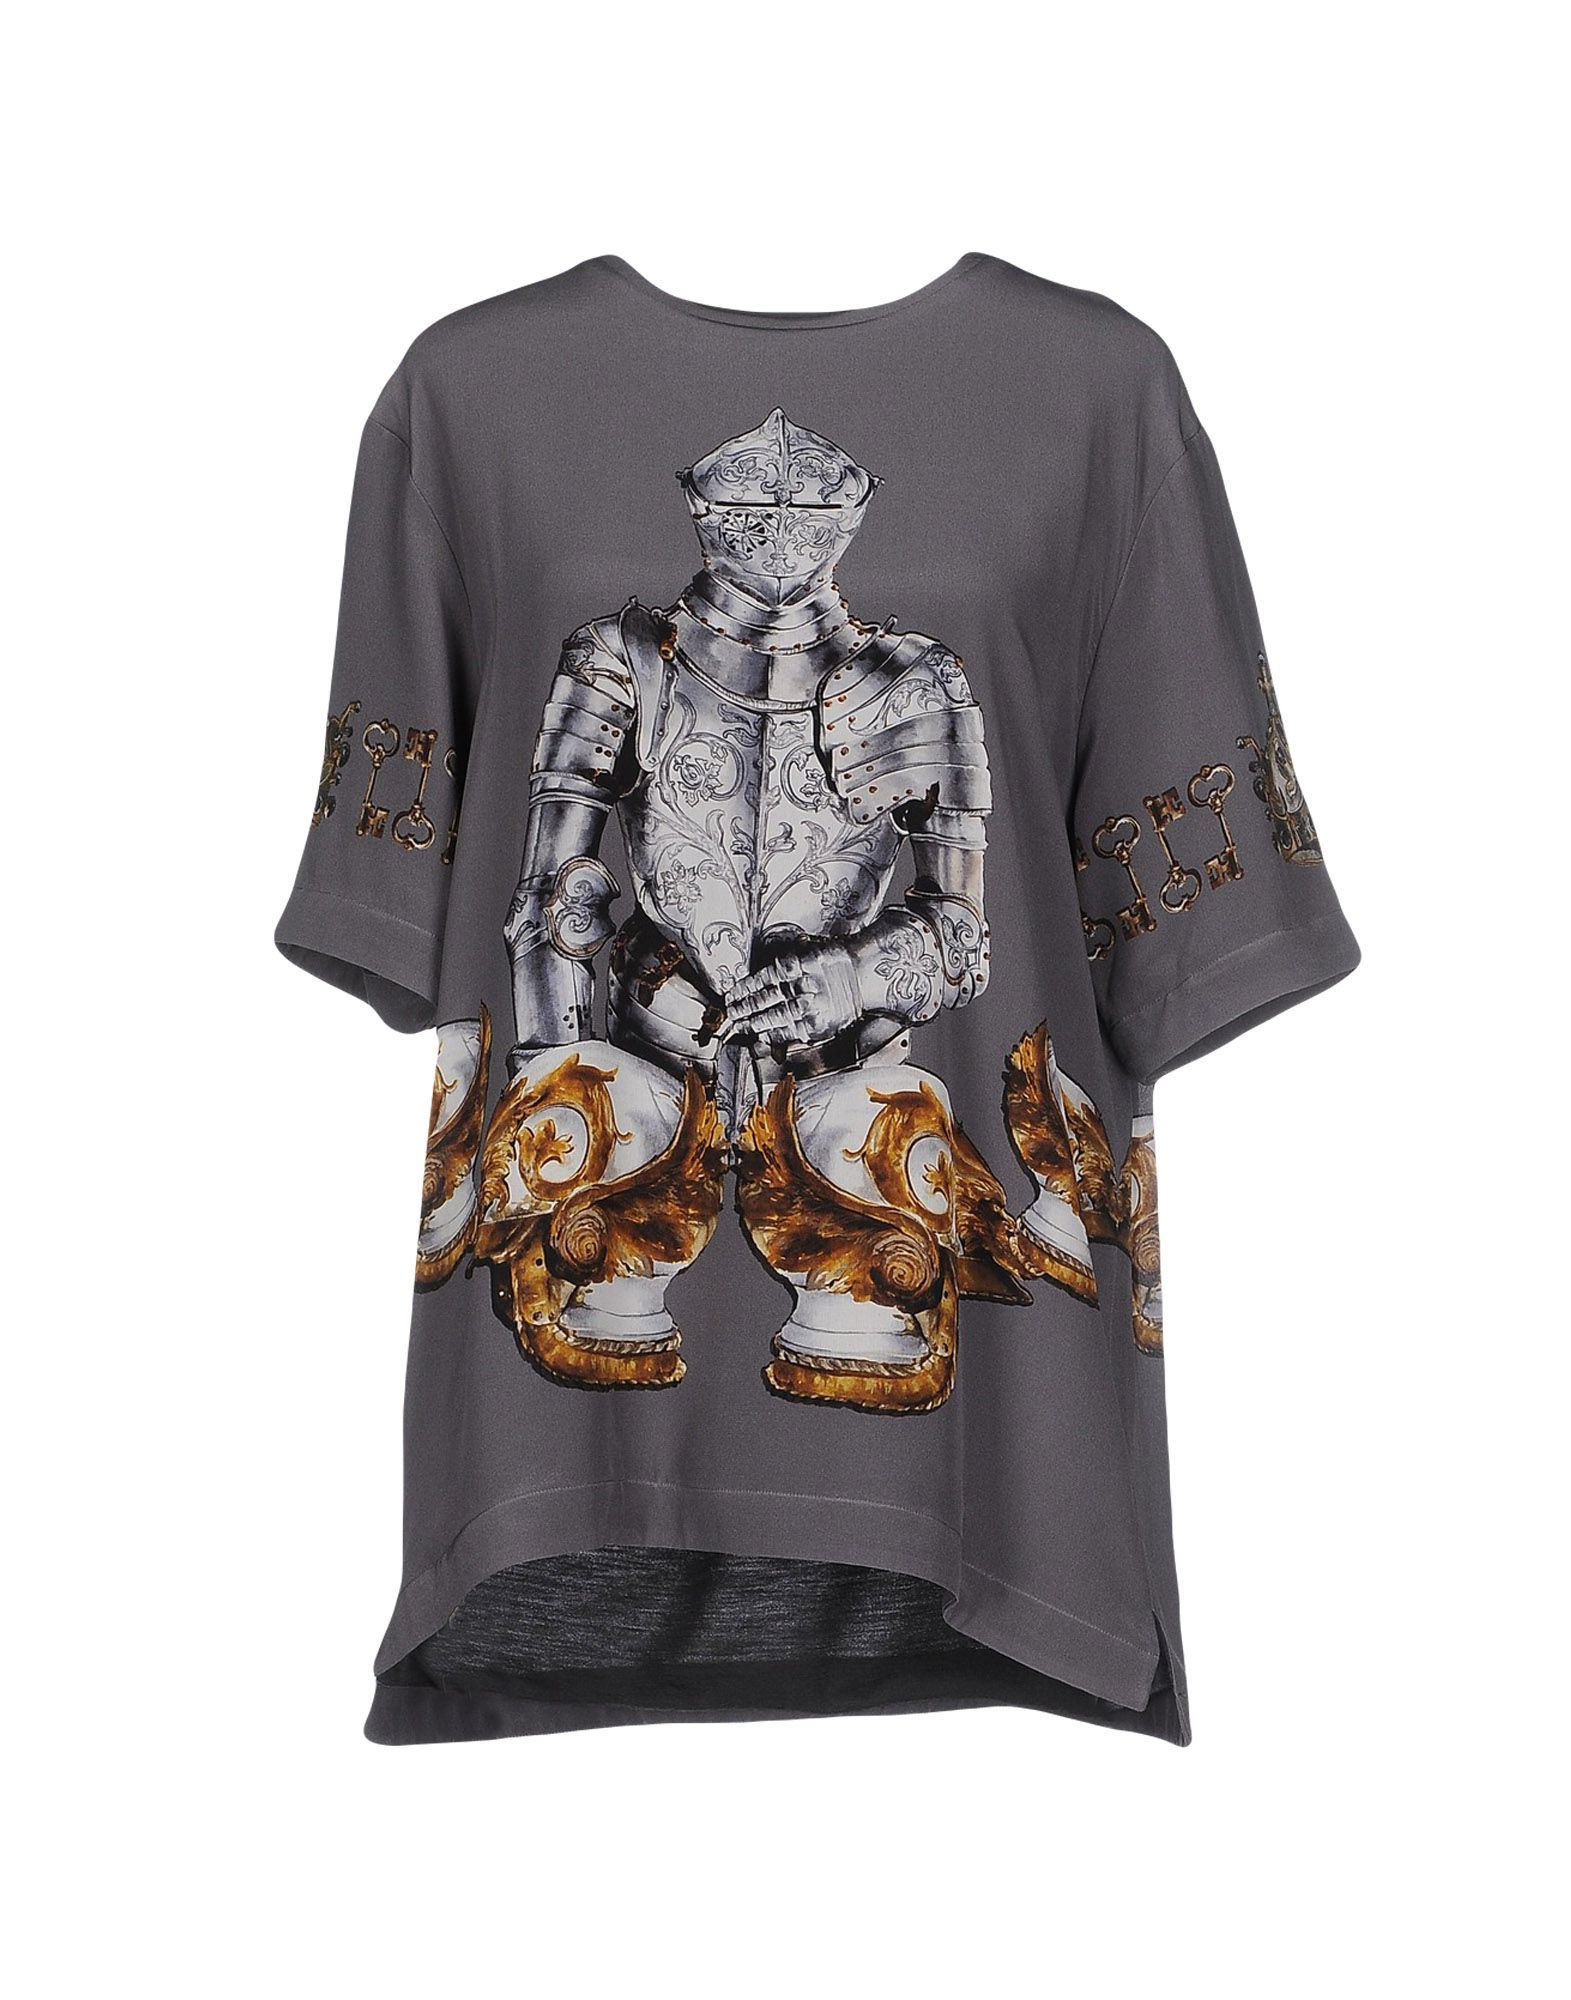 Dolce & gabbana Blouse in Gray (Lead)